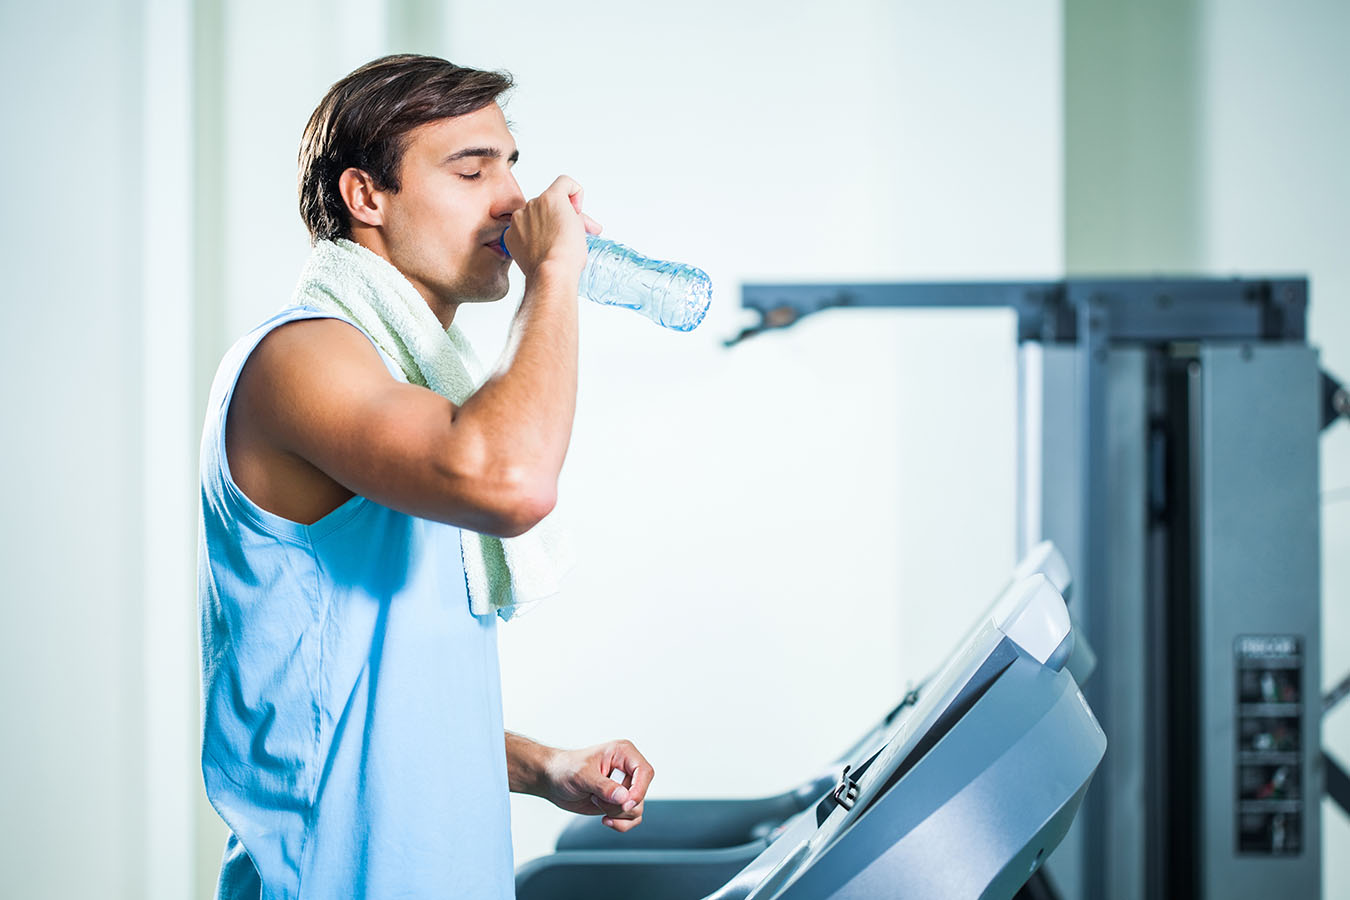 Man drinking water while exercising in gym